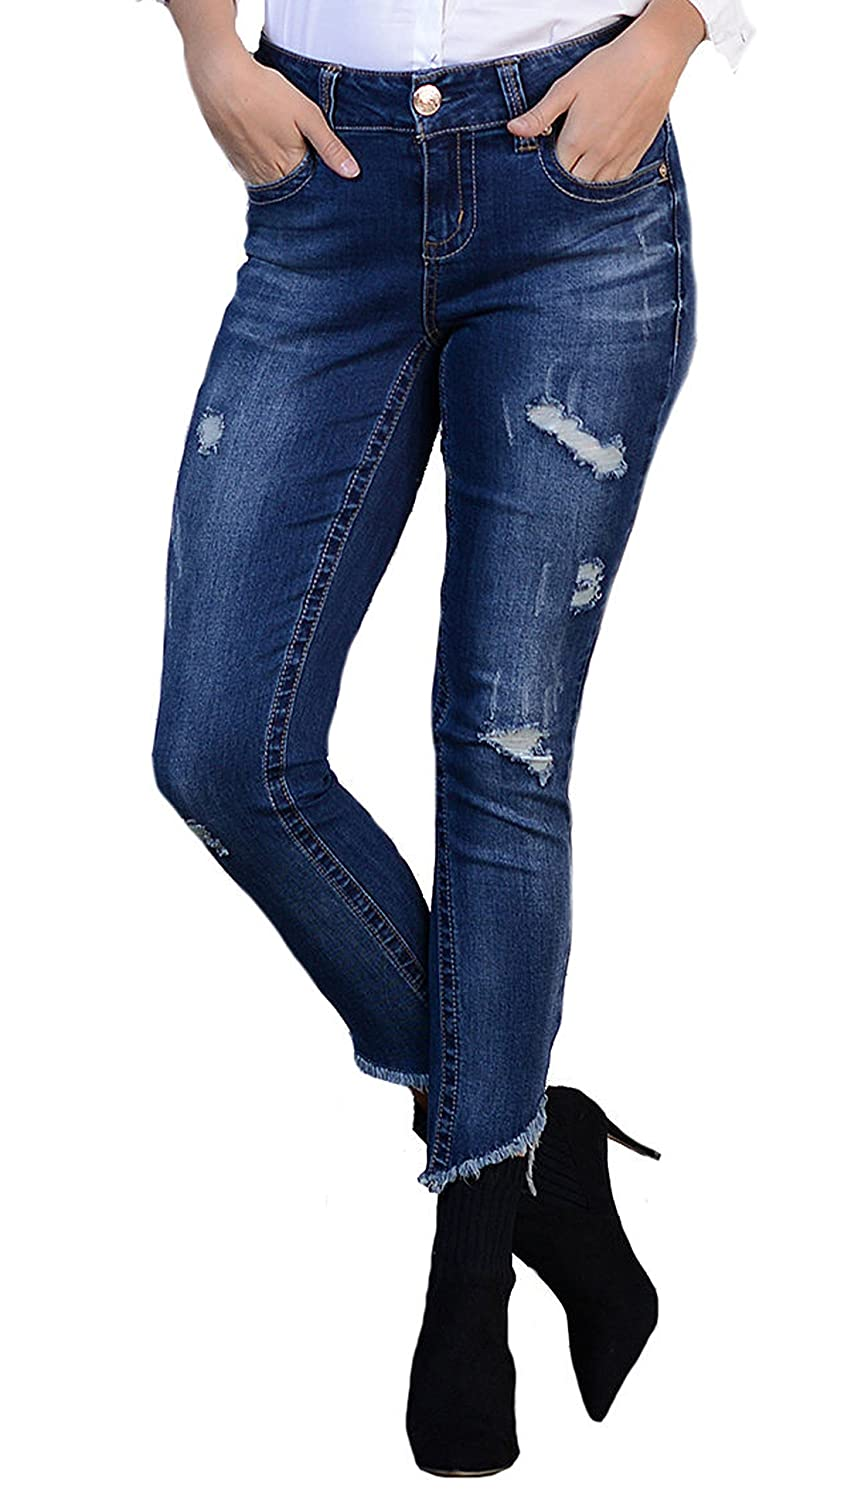 Howland 7 For All Mankind Womens Standard Skinny Jean